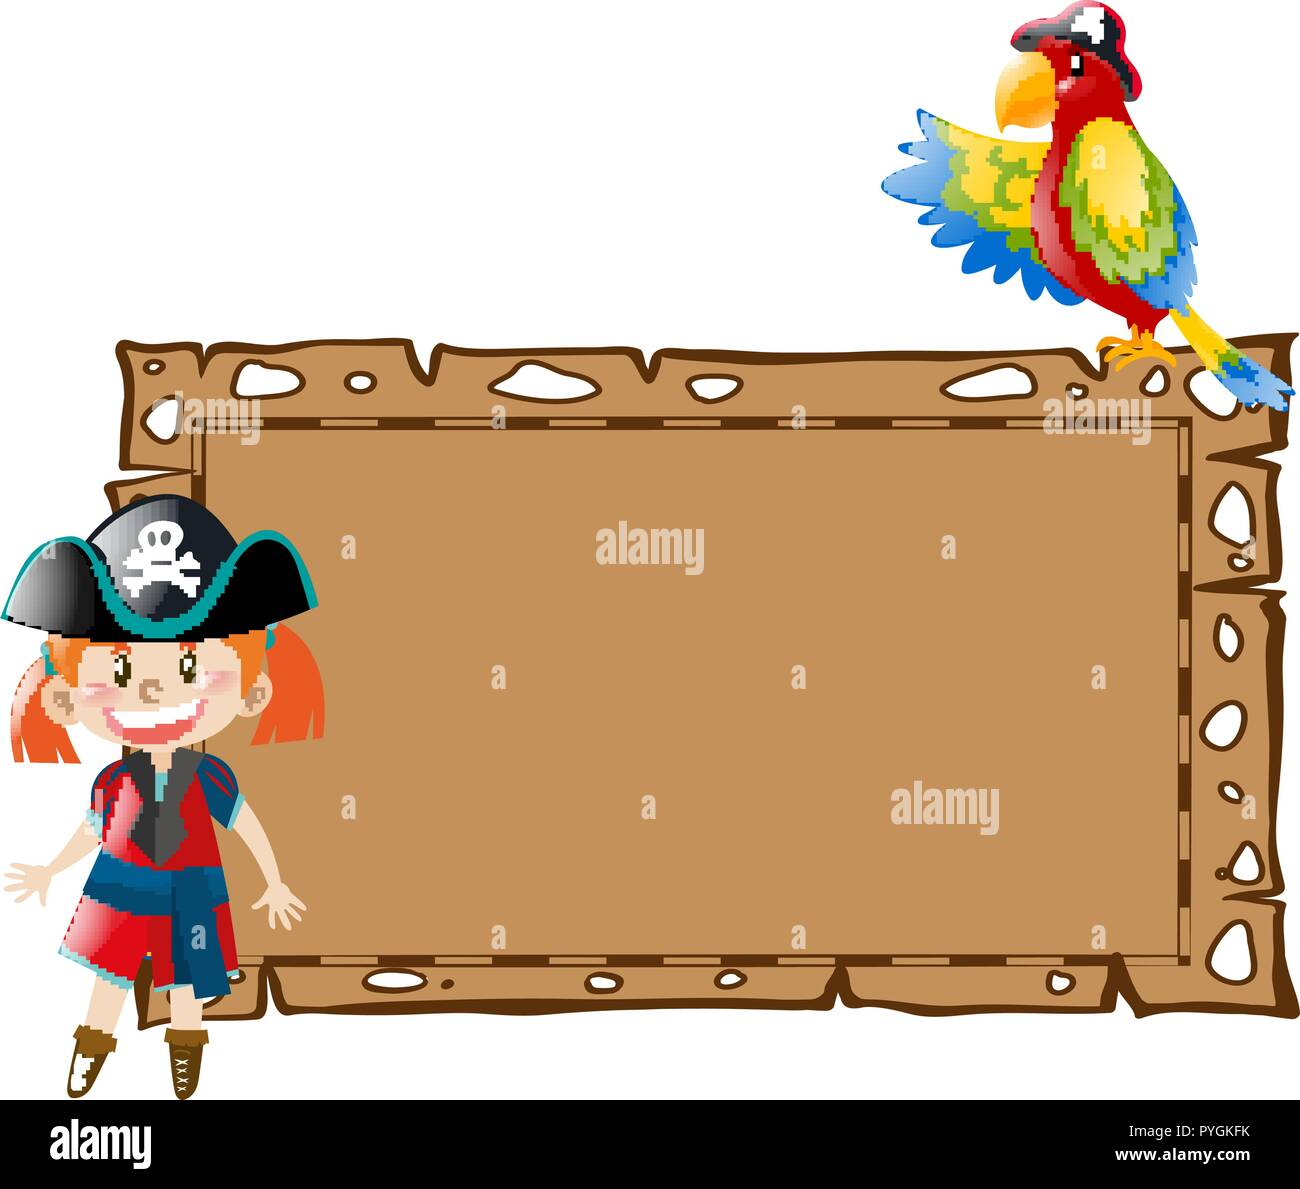 Border Template With Girl Pirate And Bird Illustration Stock Vector